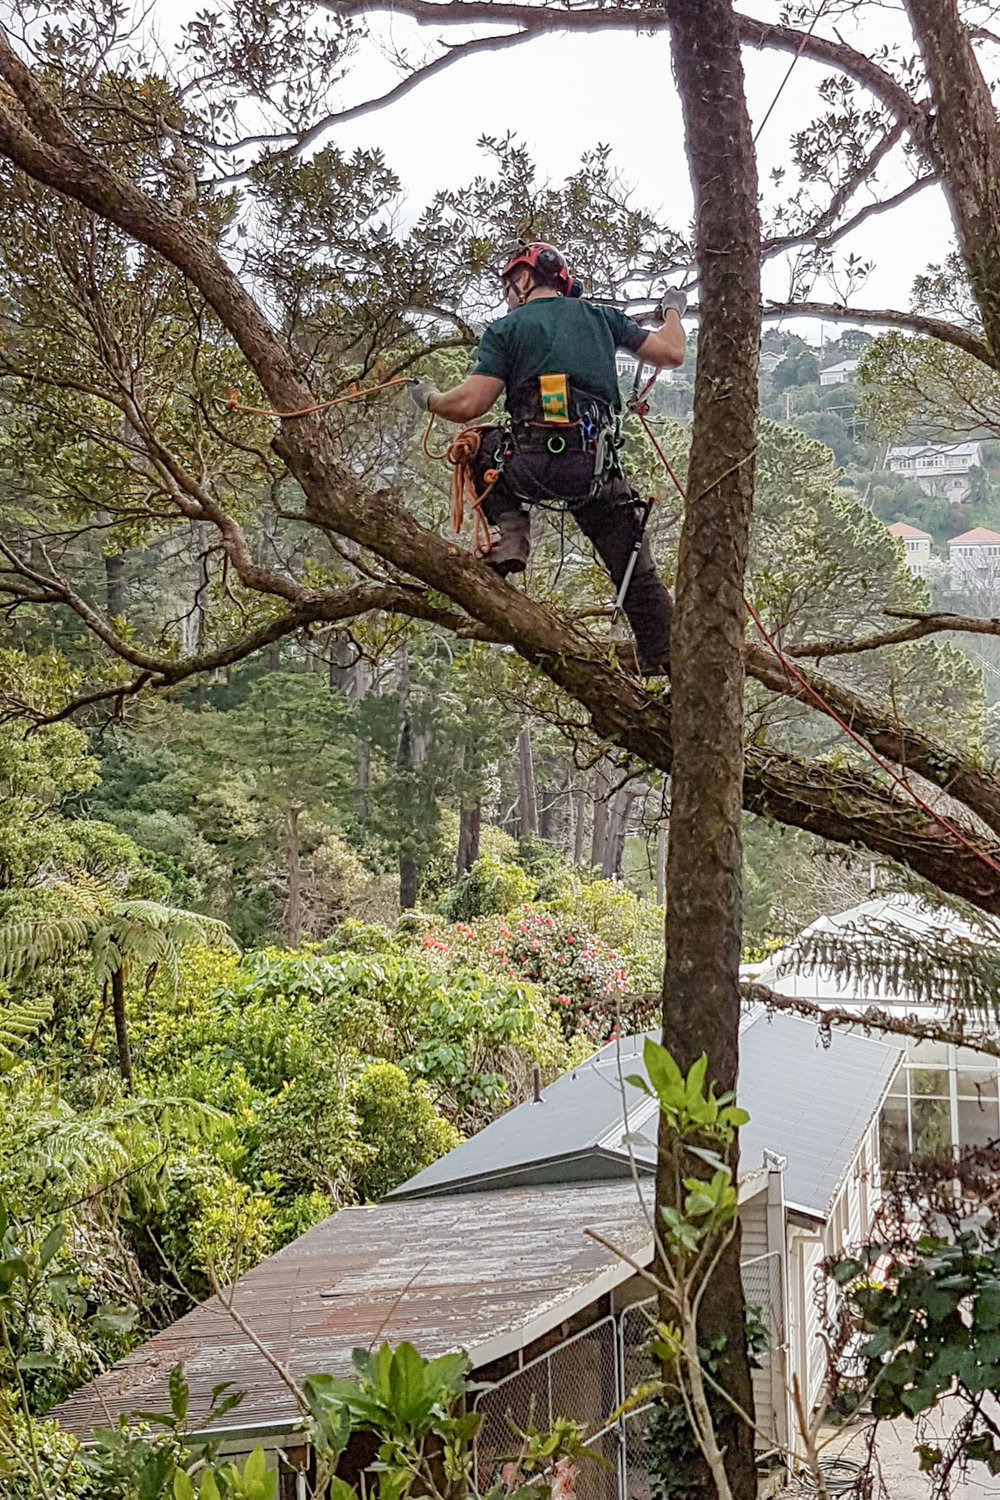 Josh Symes - Arboriculture Provides Winning Career Path For Josh